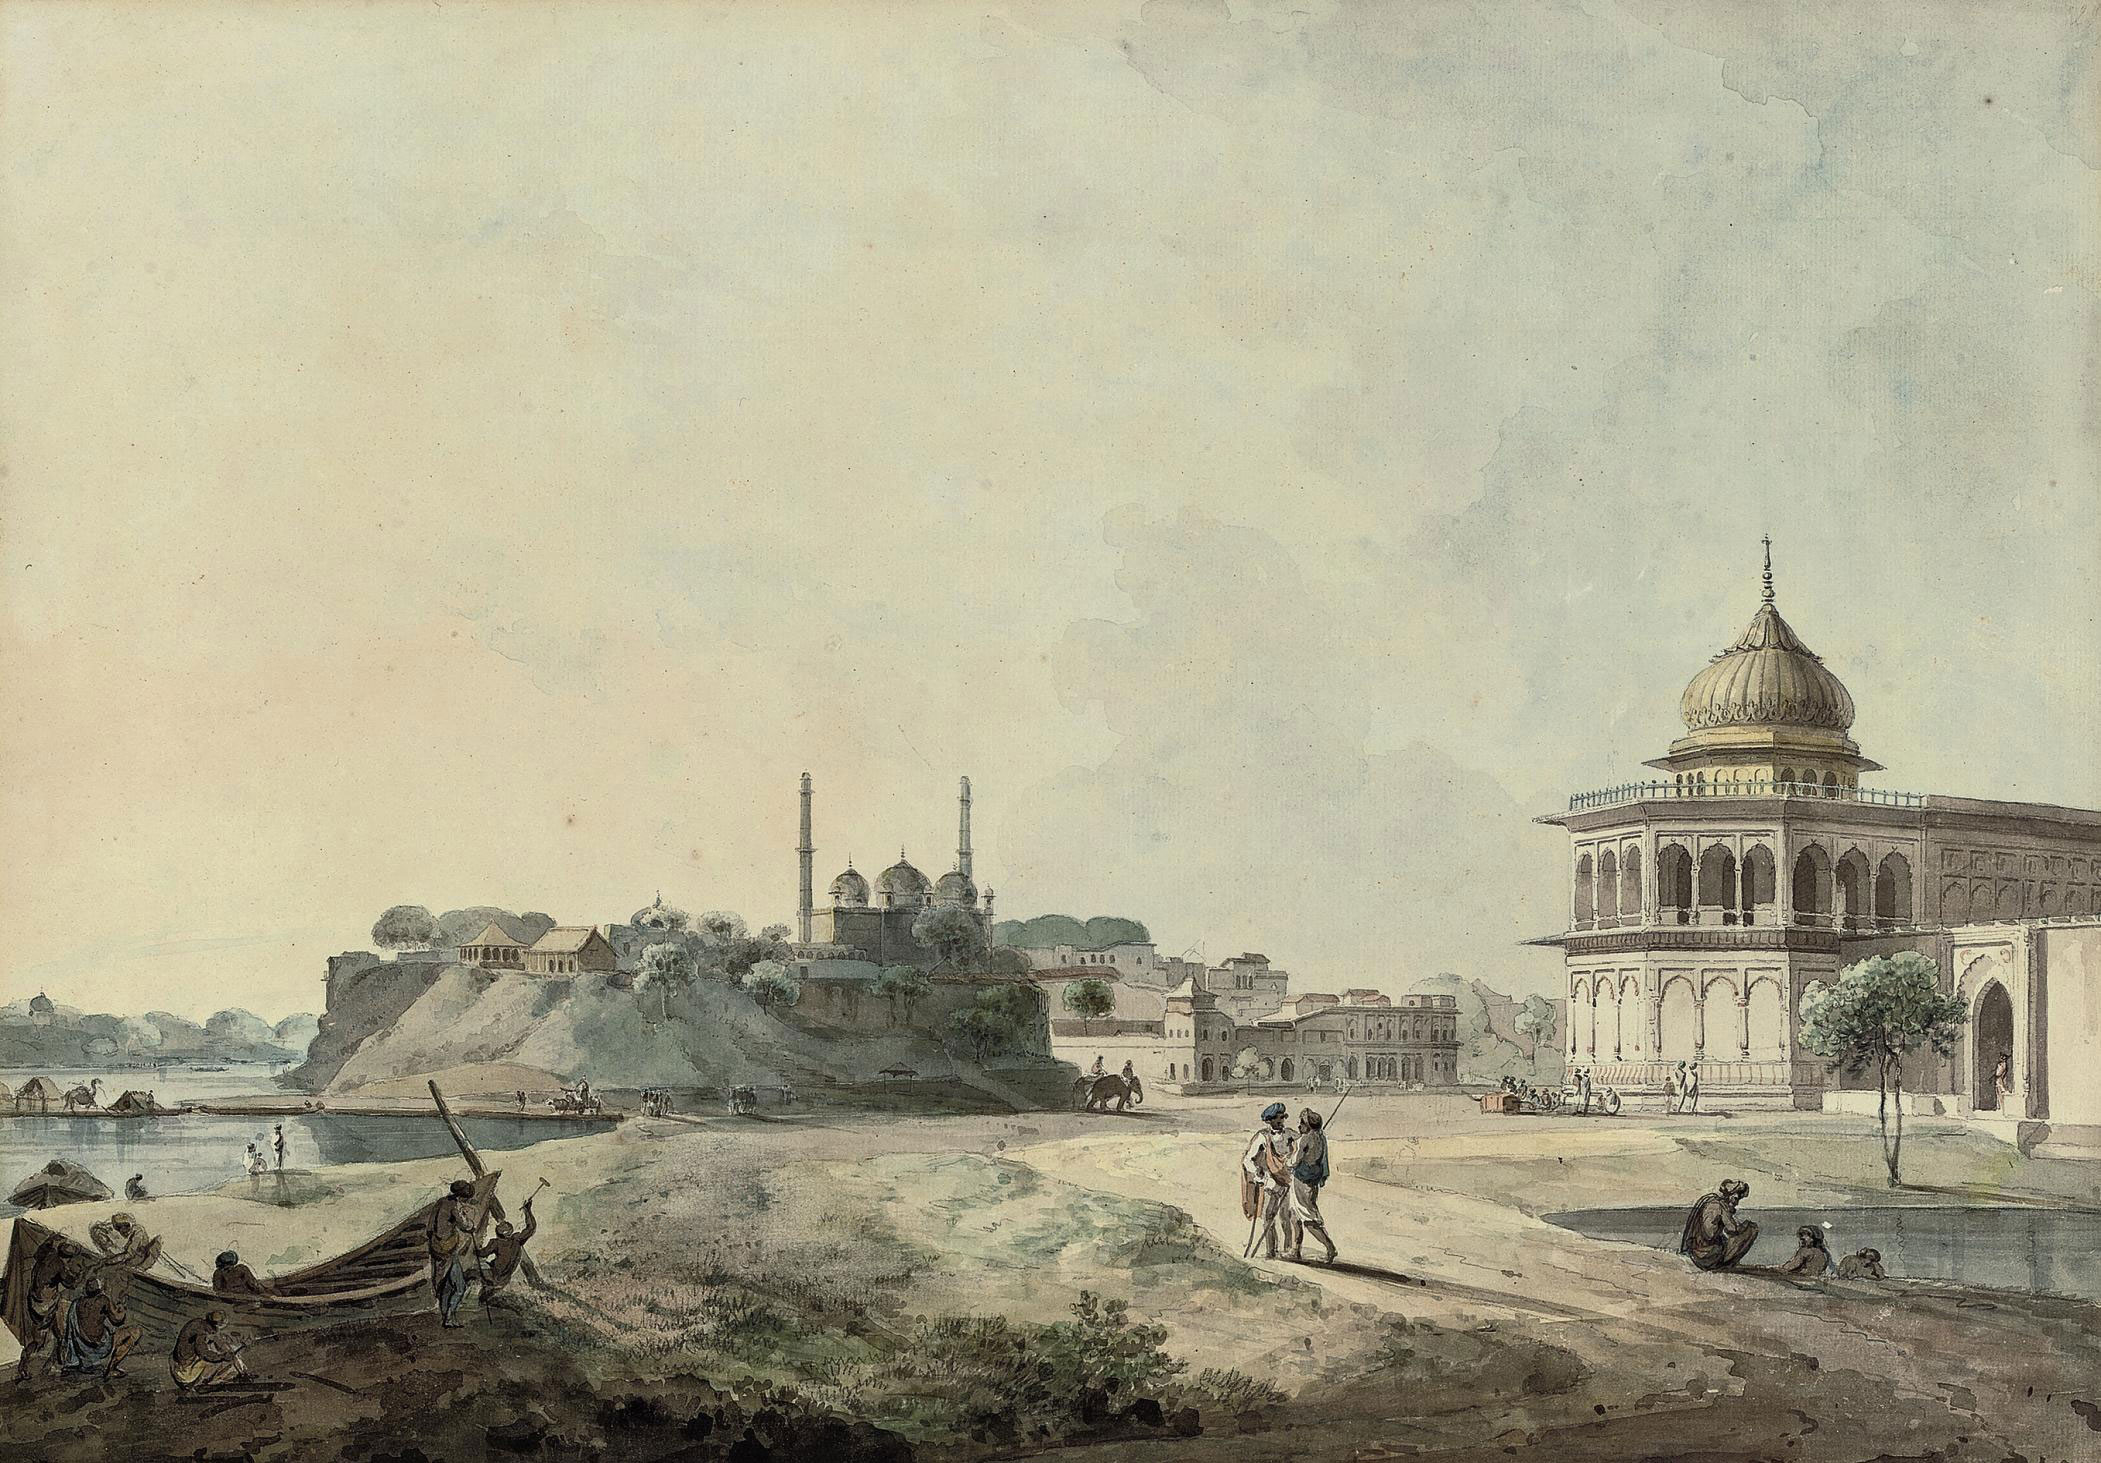 A view of Lucknow including part of the Palace of Nawab Asaf-ud-daulah, taken from the southen bank of the River Gumti